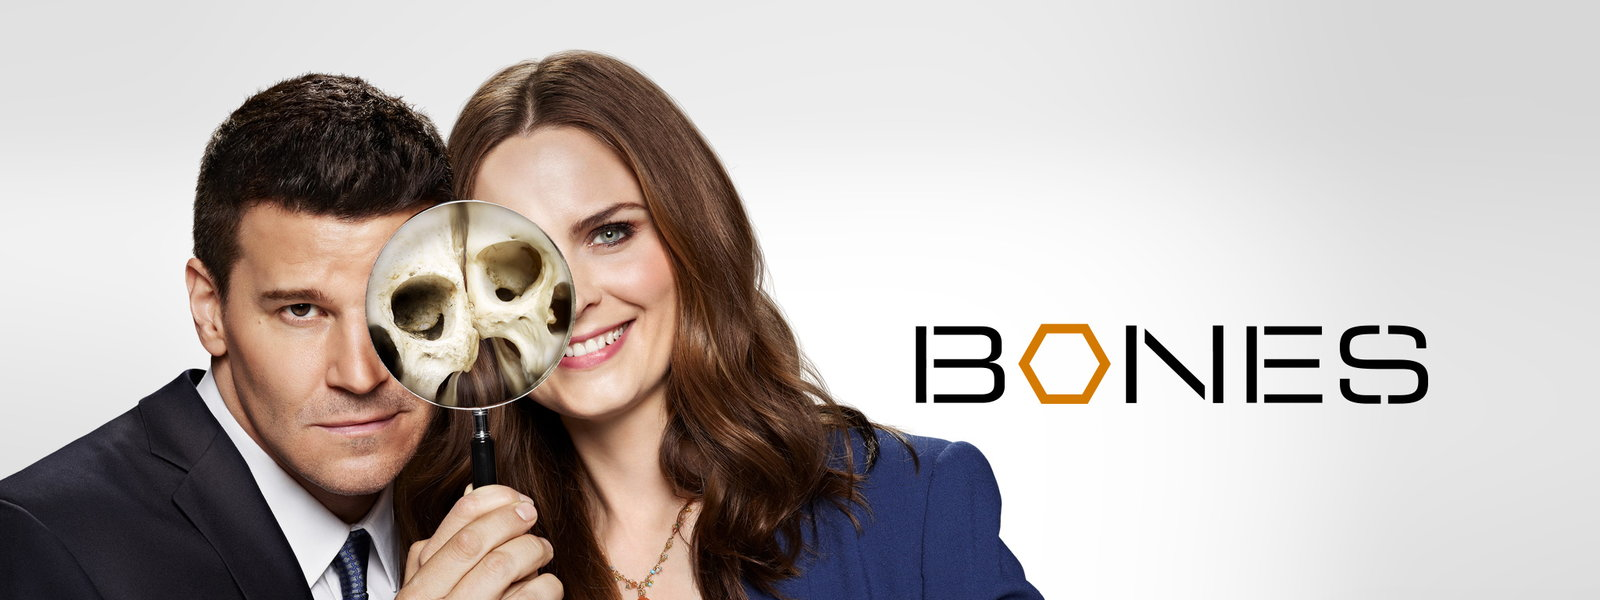 Watch Bones Online | Stream on Hulu